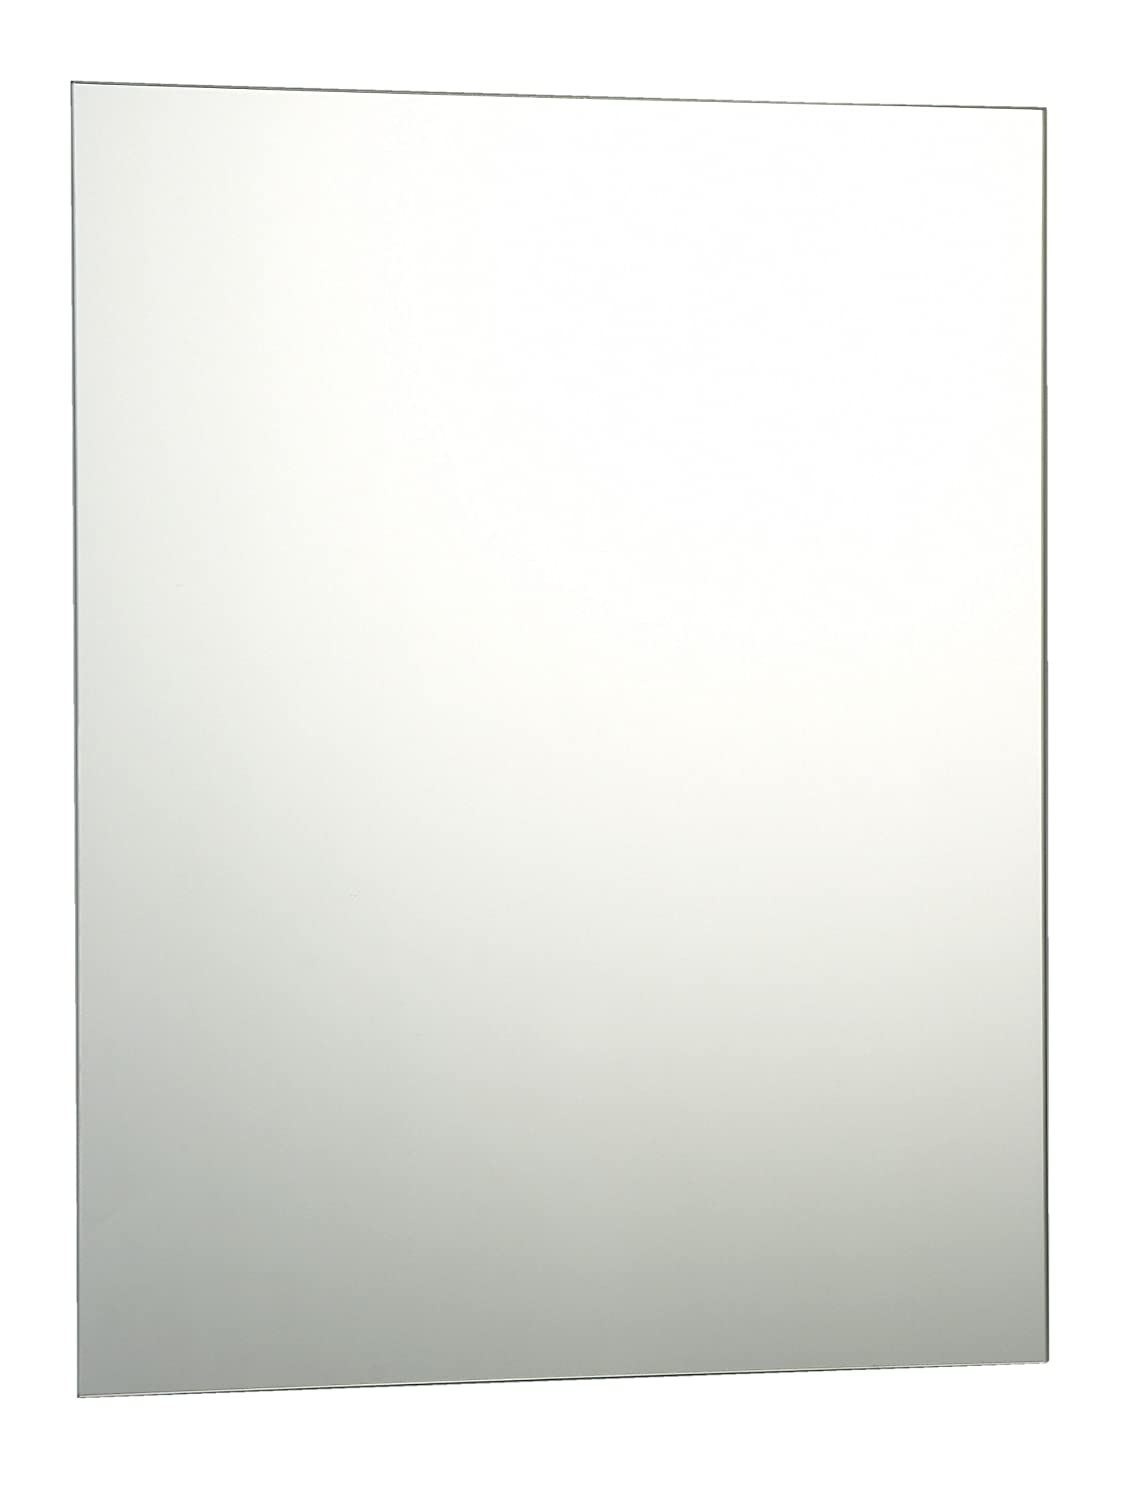 50 x 40cm Plain Frameless Bathroom Rectangle Mirror with Wall Fixings